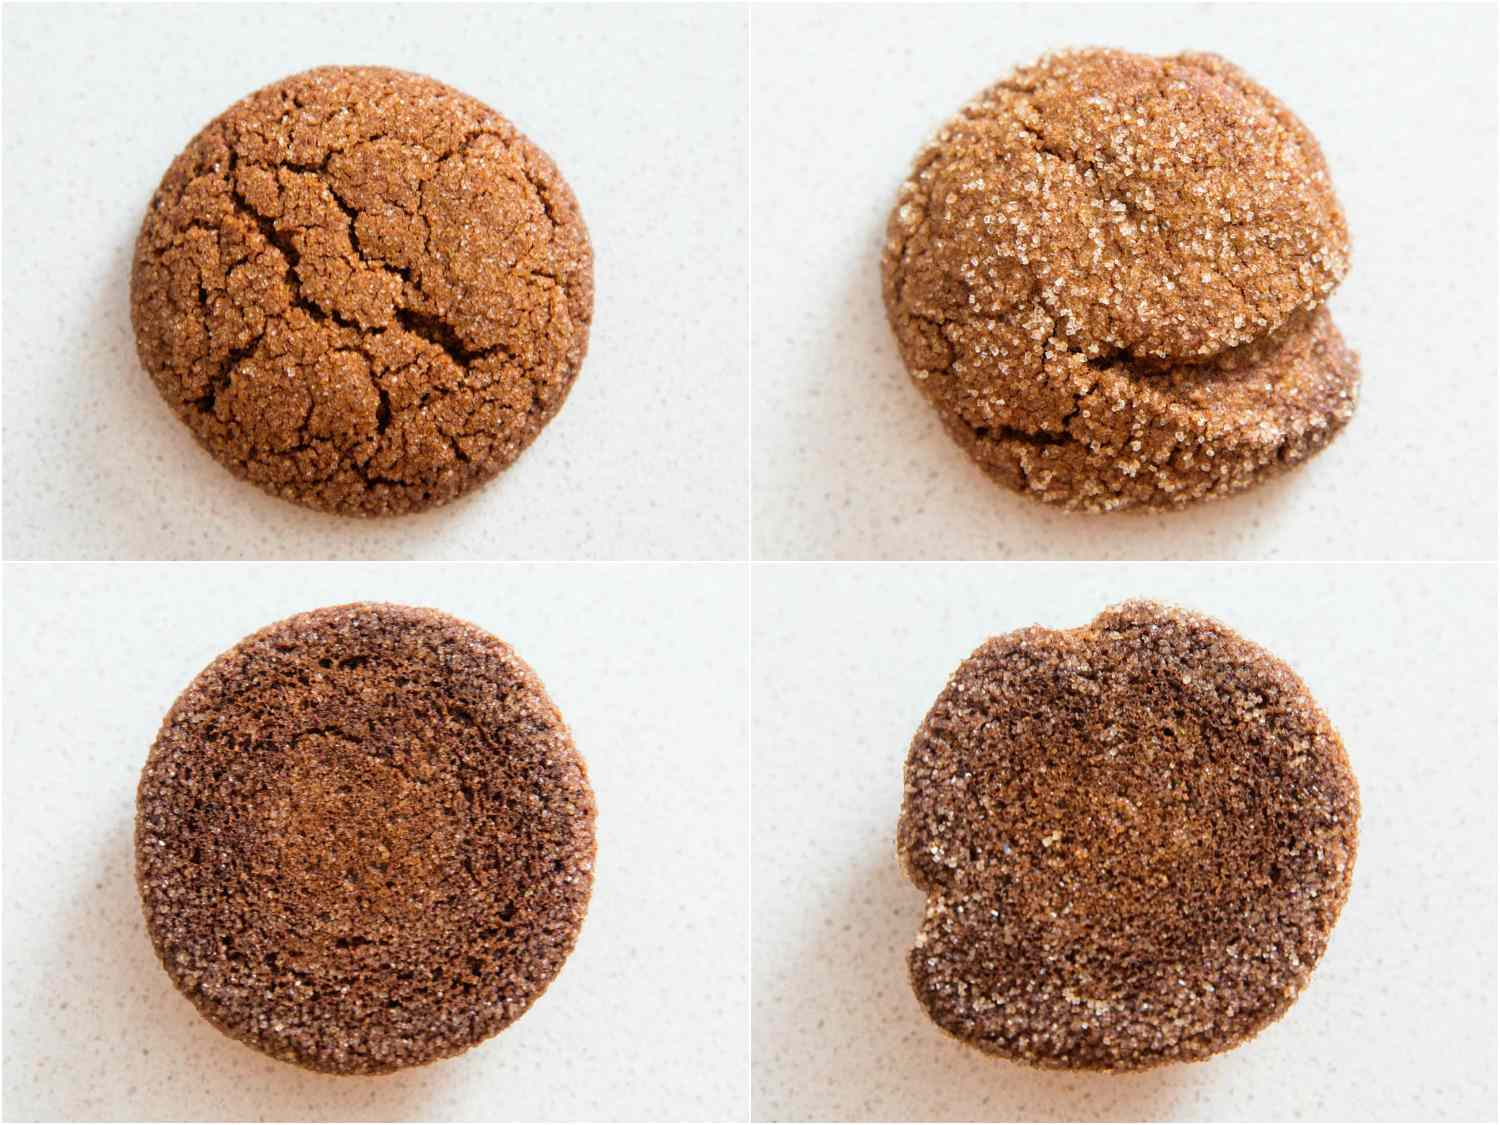 Gingerbread cookies made with molasses and with blackstrap molasses